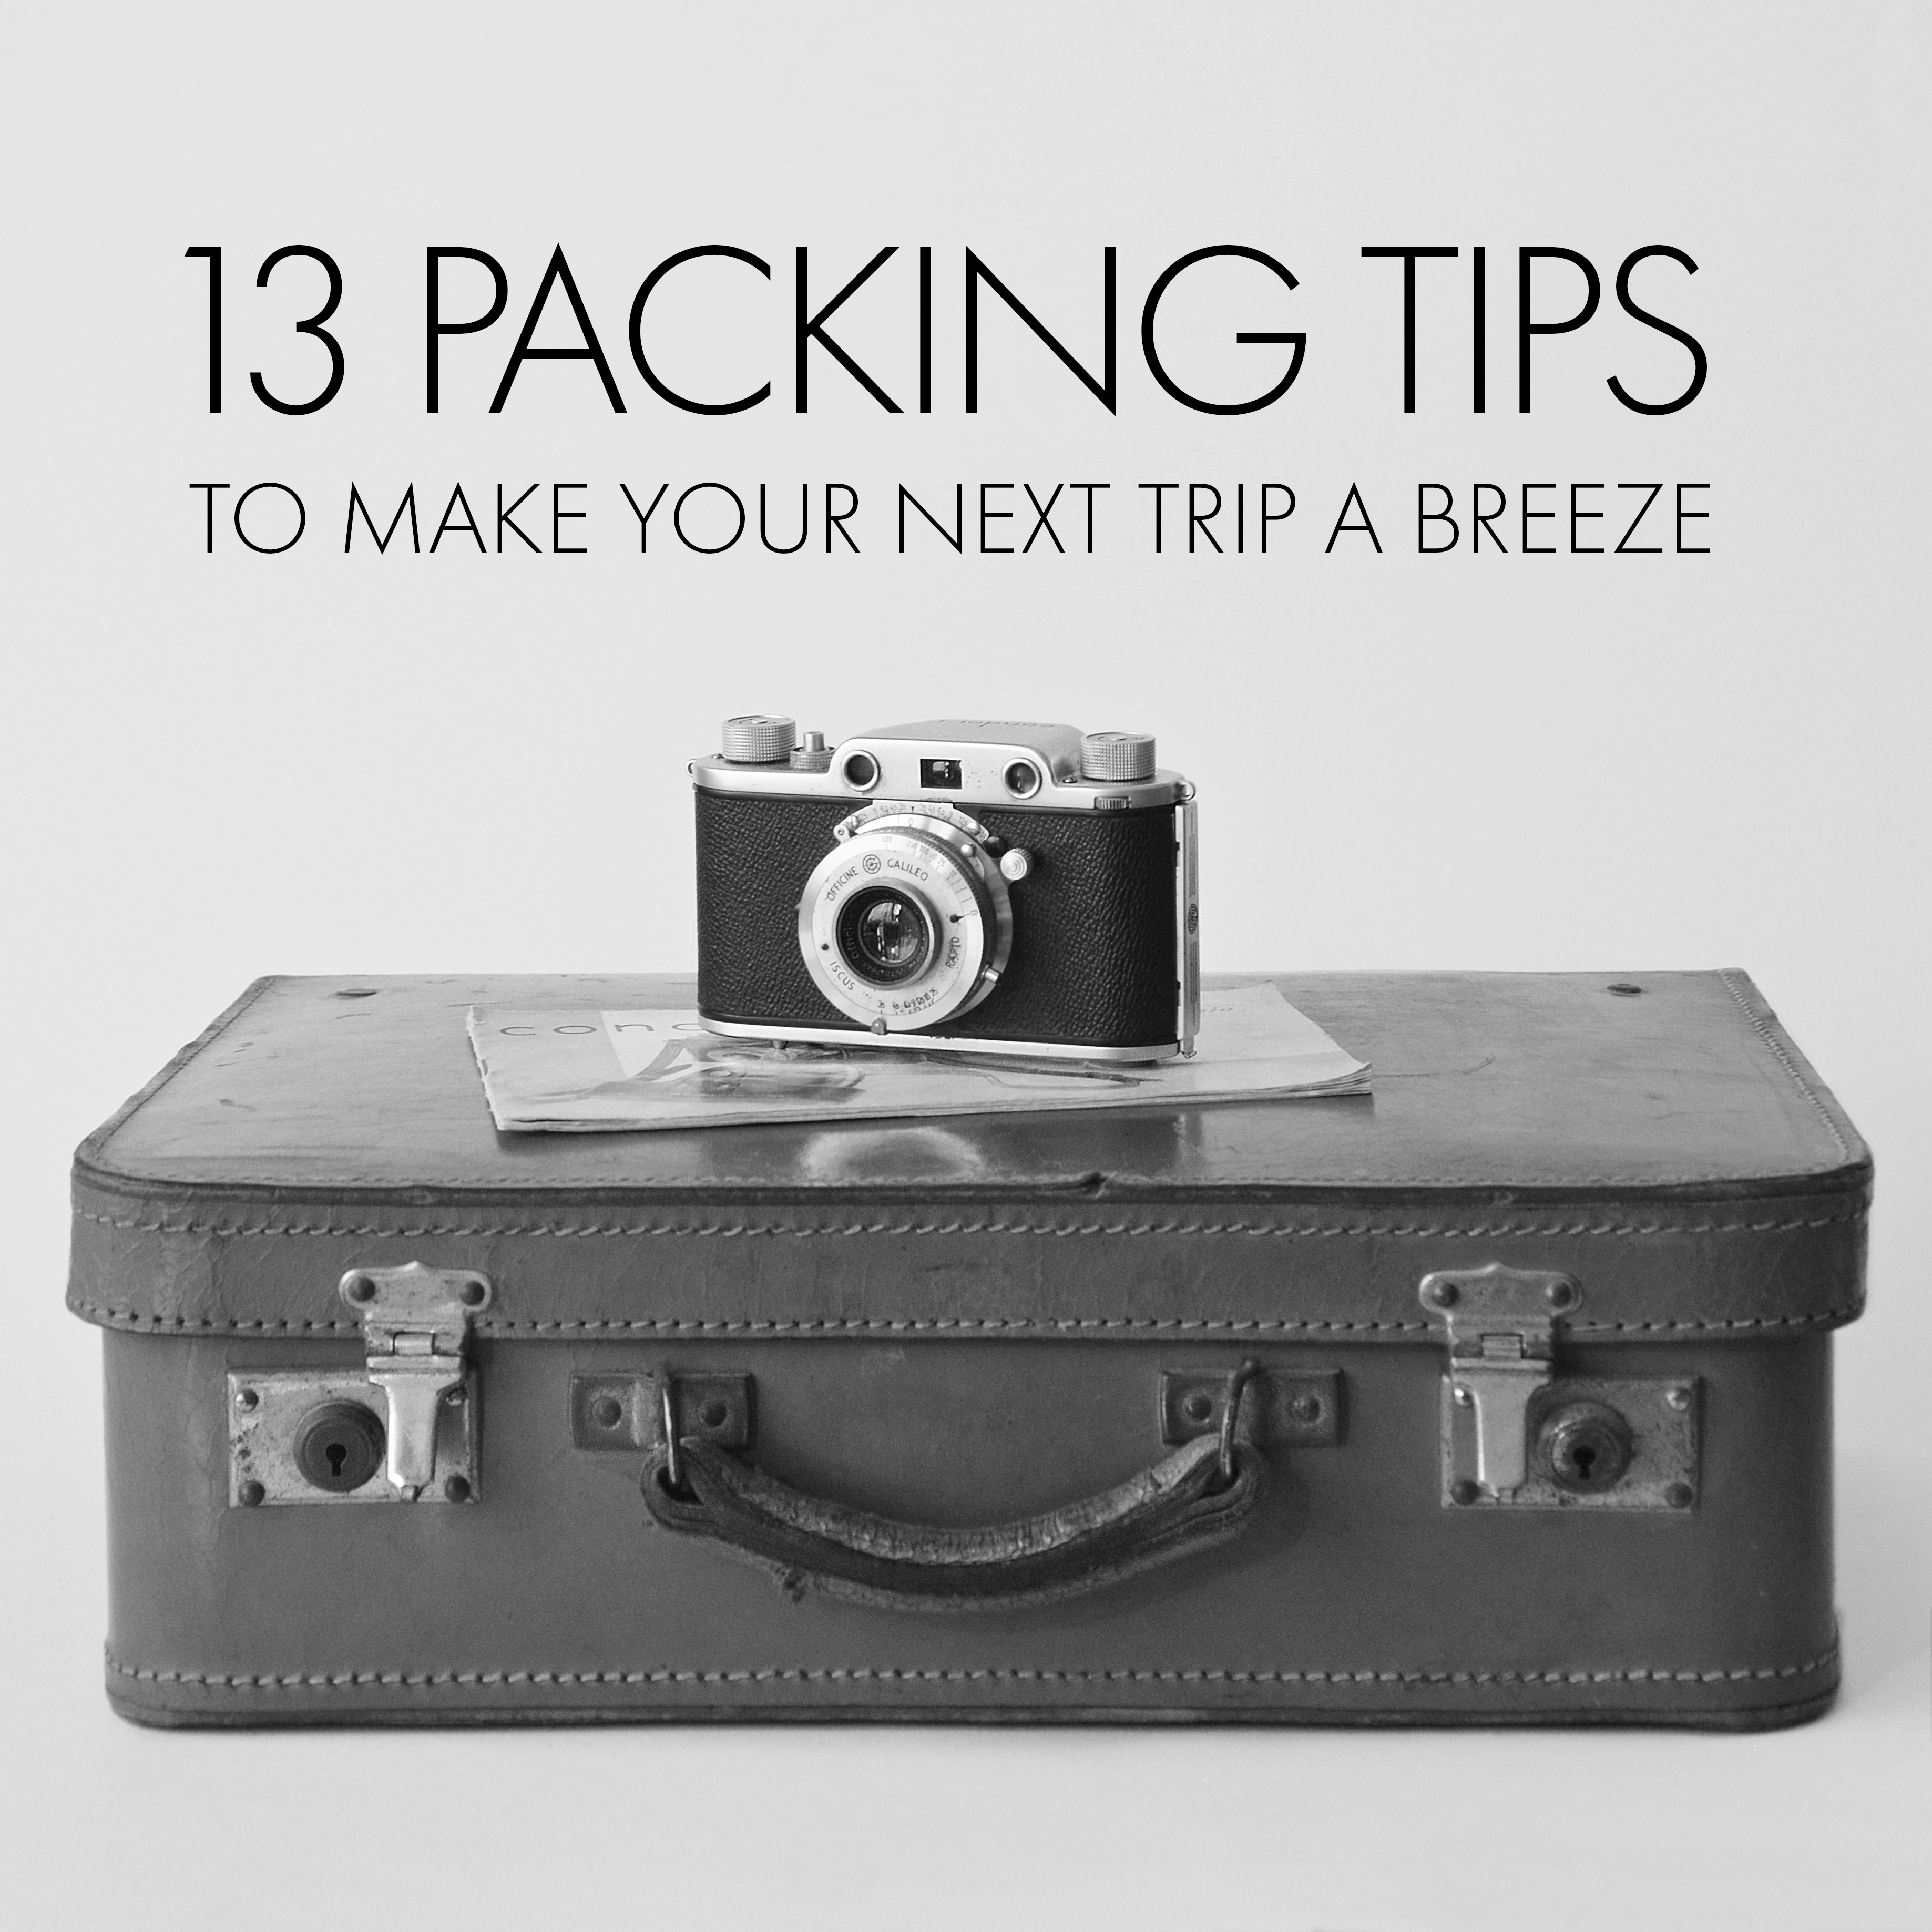 13 packing tips